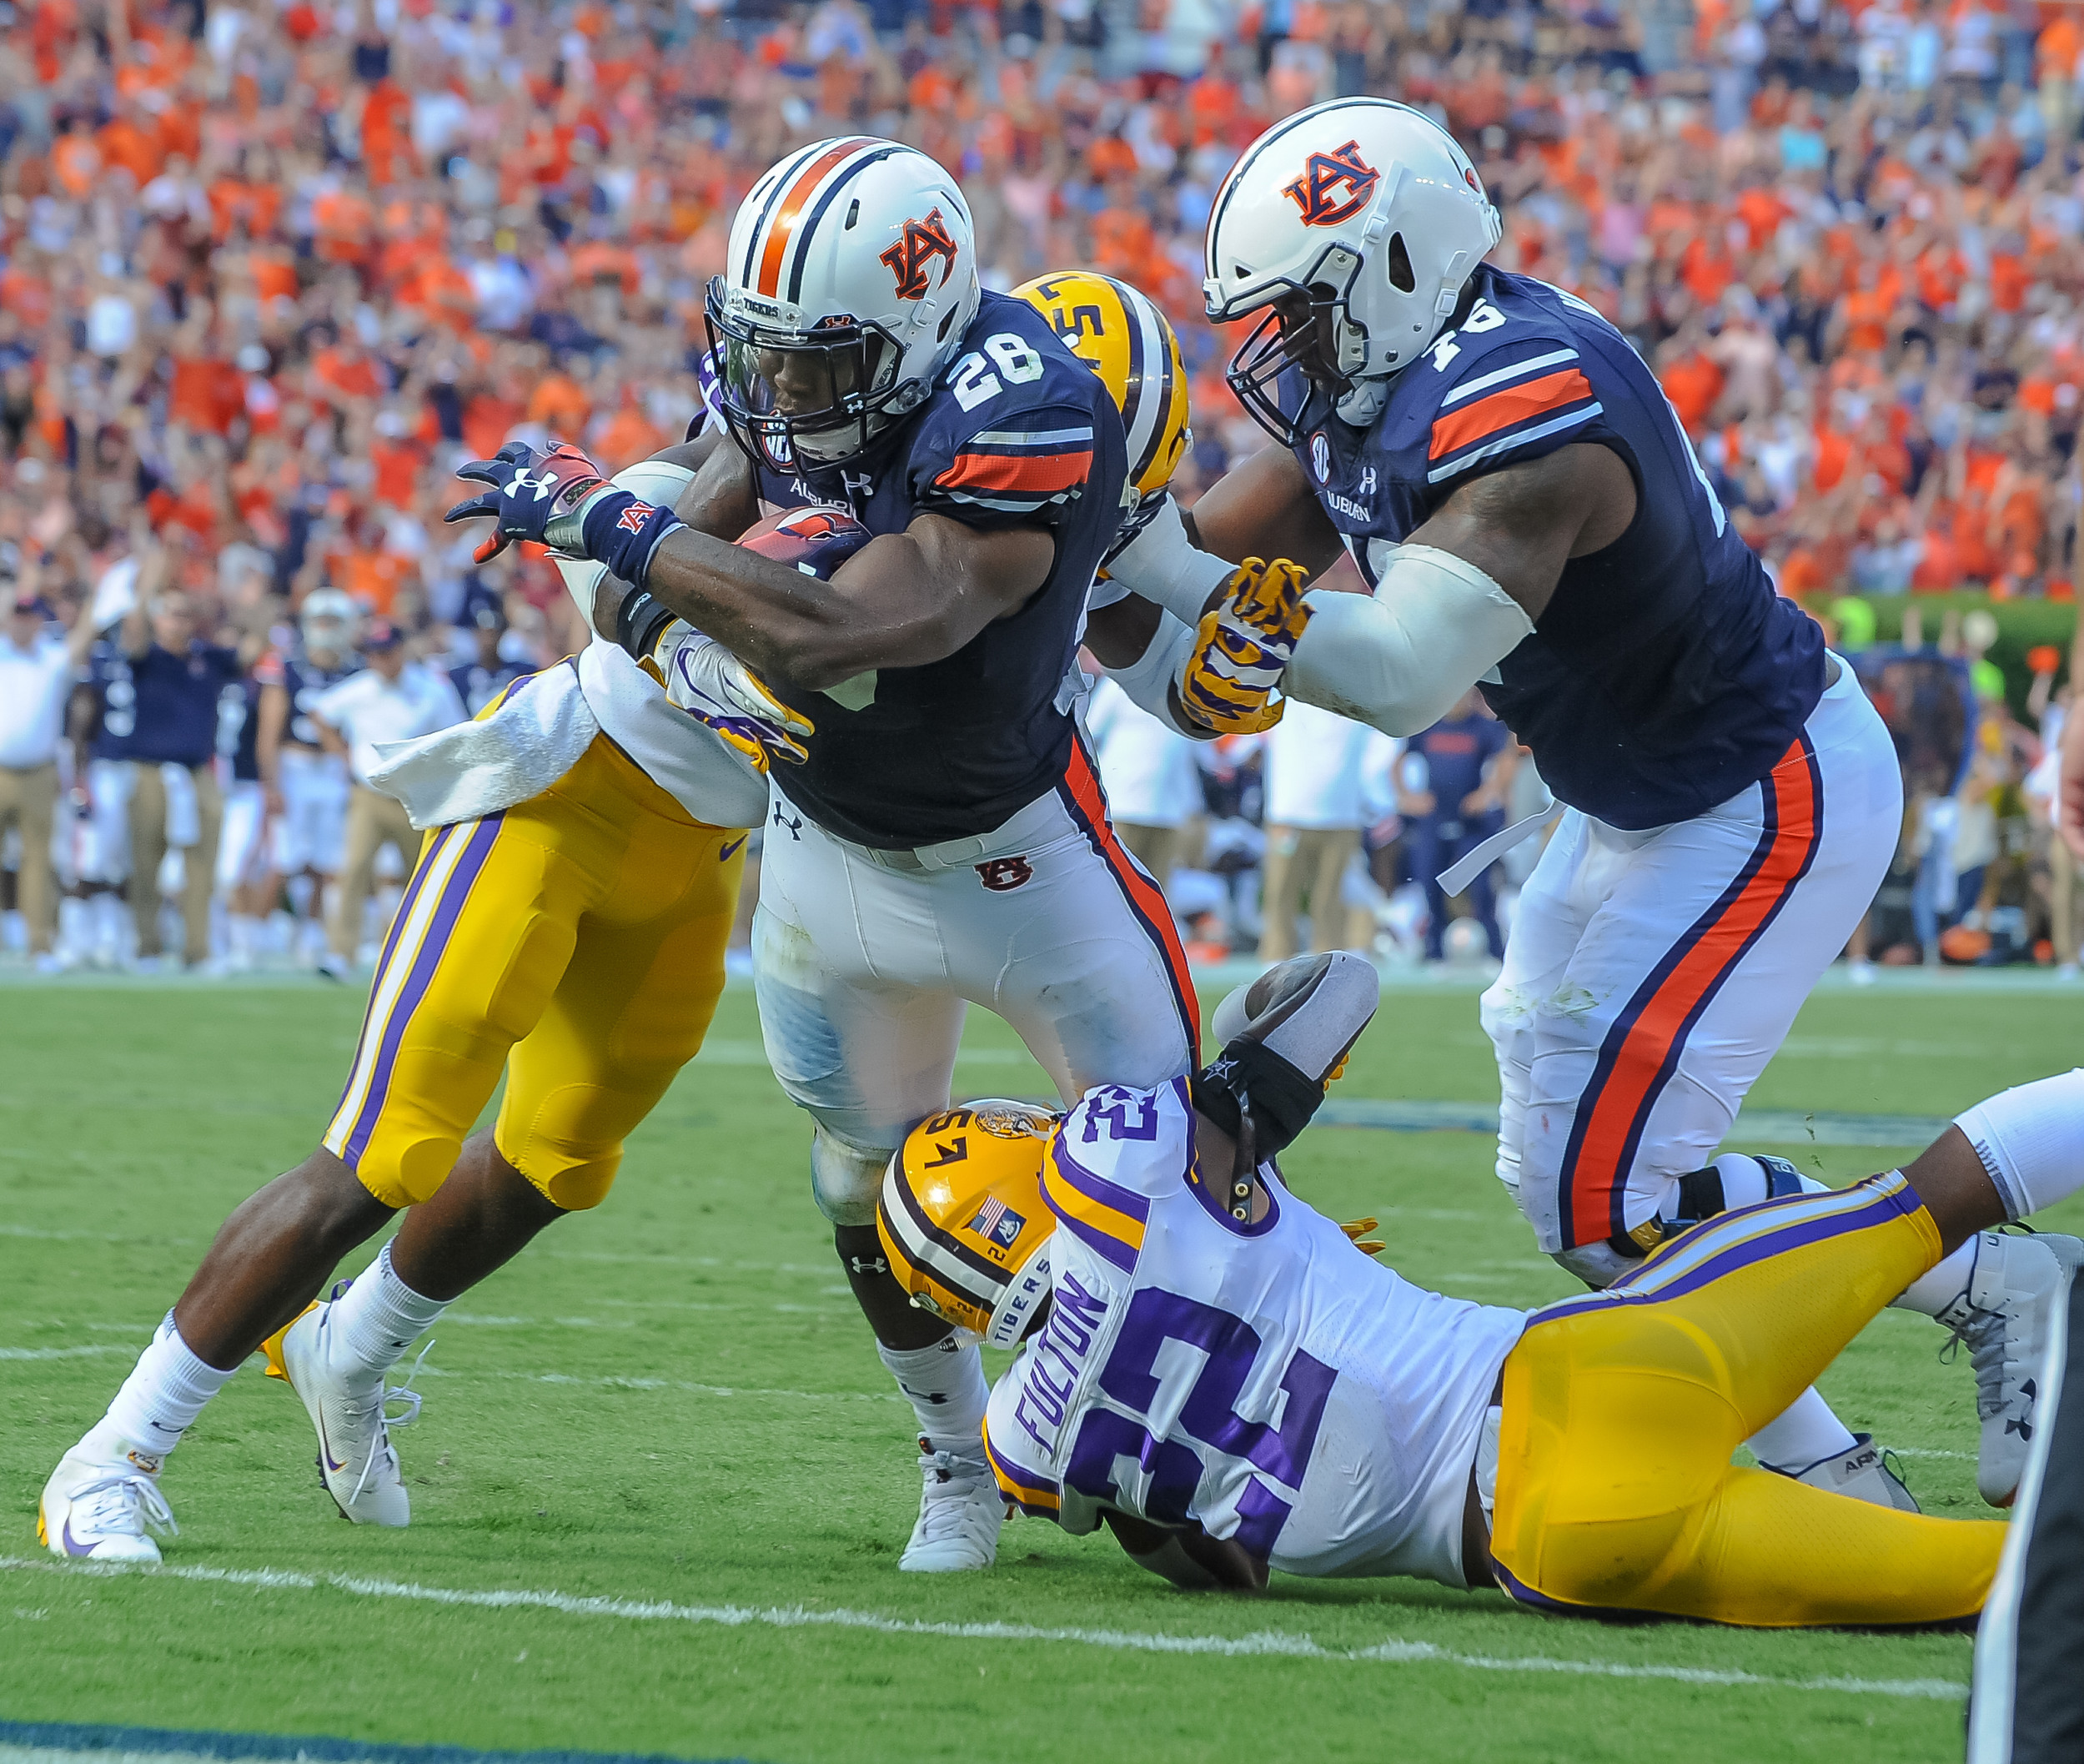 Auburn Tigers running back JaTarvious Whitlow (28) scores a touchdown over LSU Tigers cornerback Kristian Fulton (22) during the first half of Saturday's game, at Jordan Hare Stadium in Auburn. (Contributed by Jeff Johnsey)